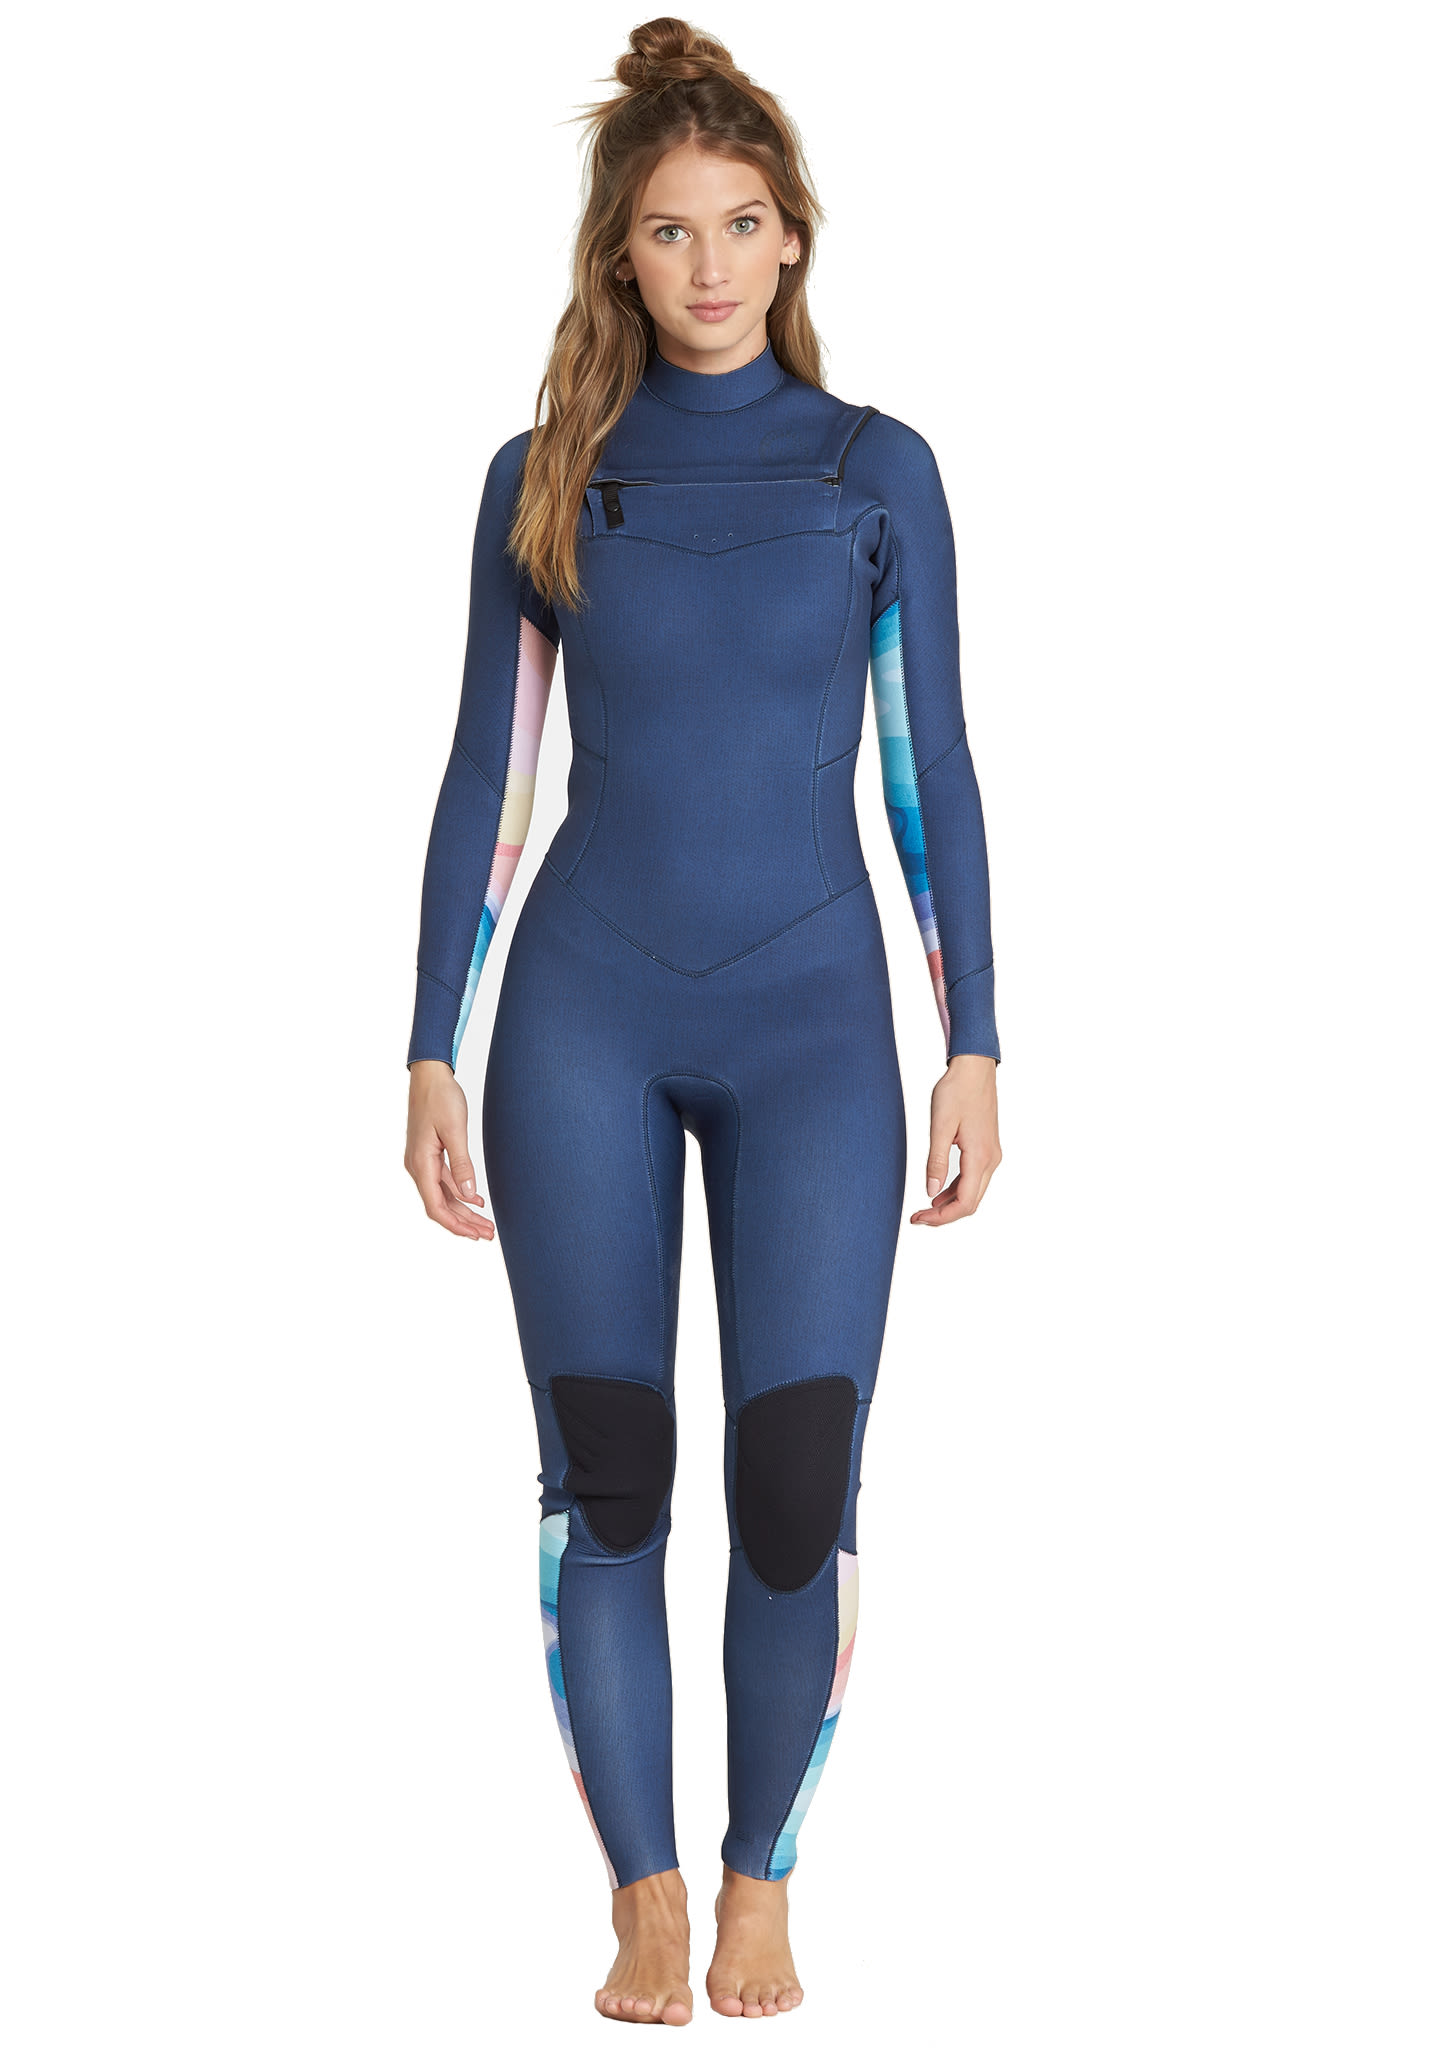 72ae4015f3 BILLABONG Salty Dayz 3 2mm Chest Zip - Wetsuit for Women - Blue - Planet  Sports